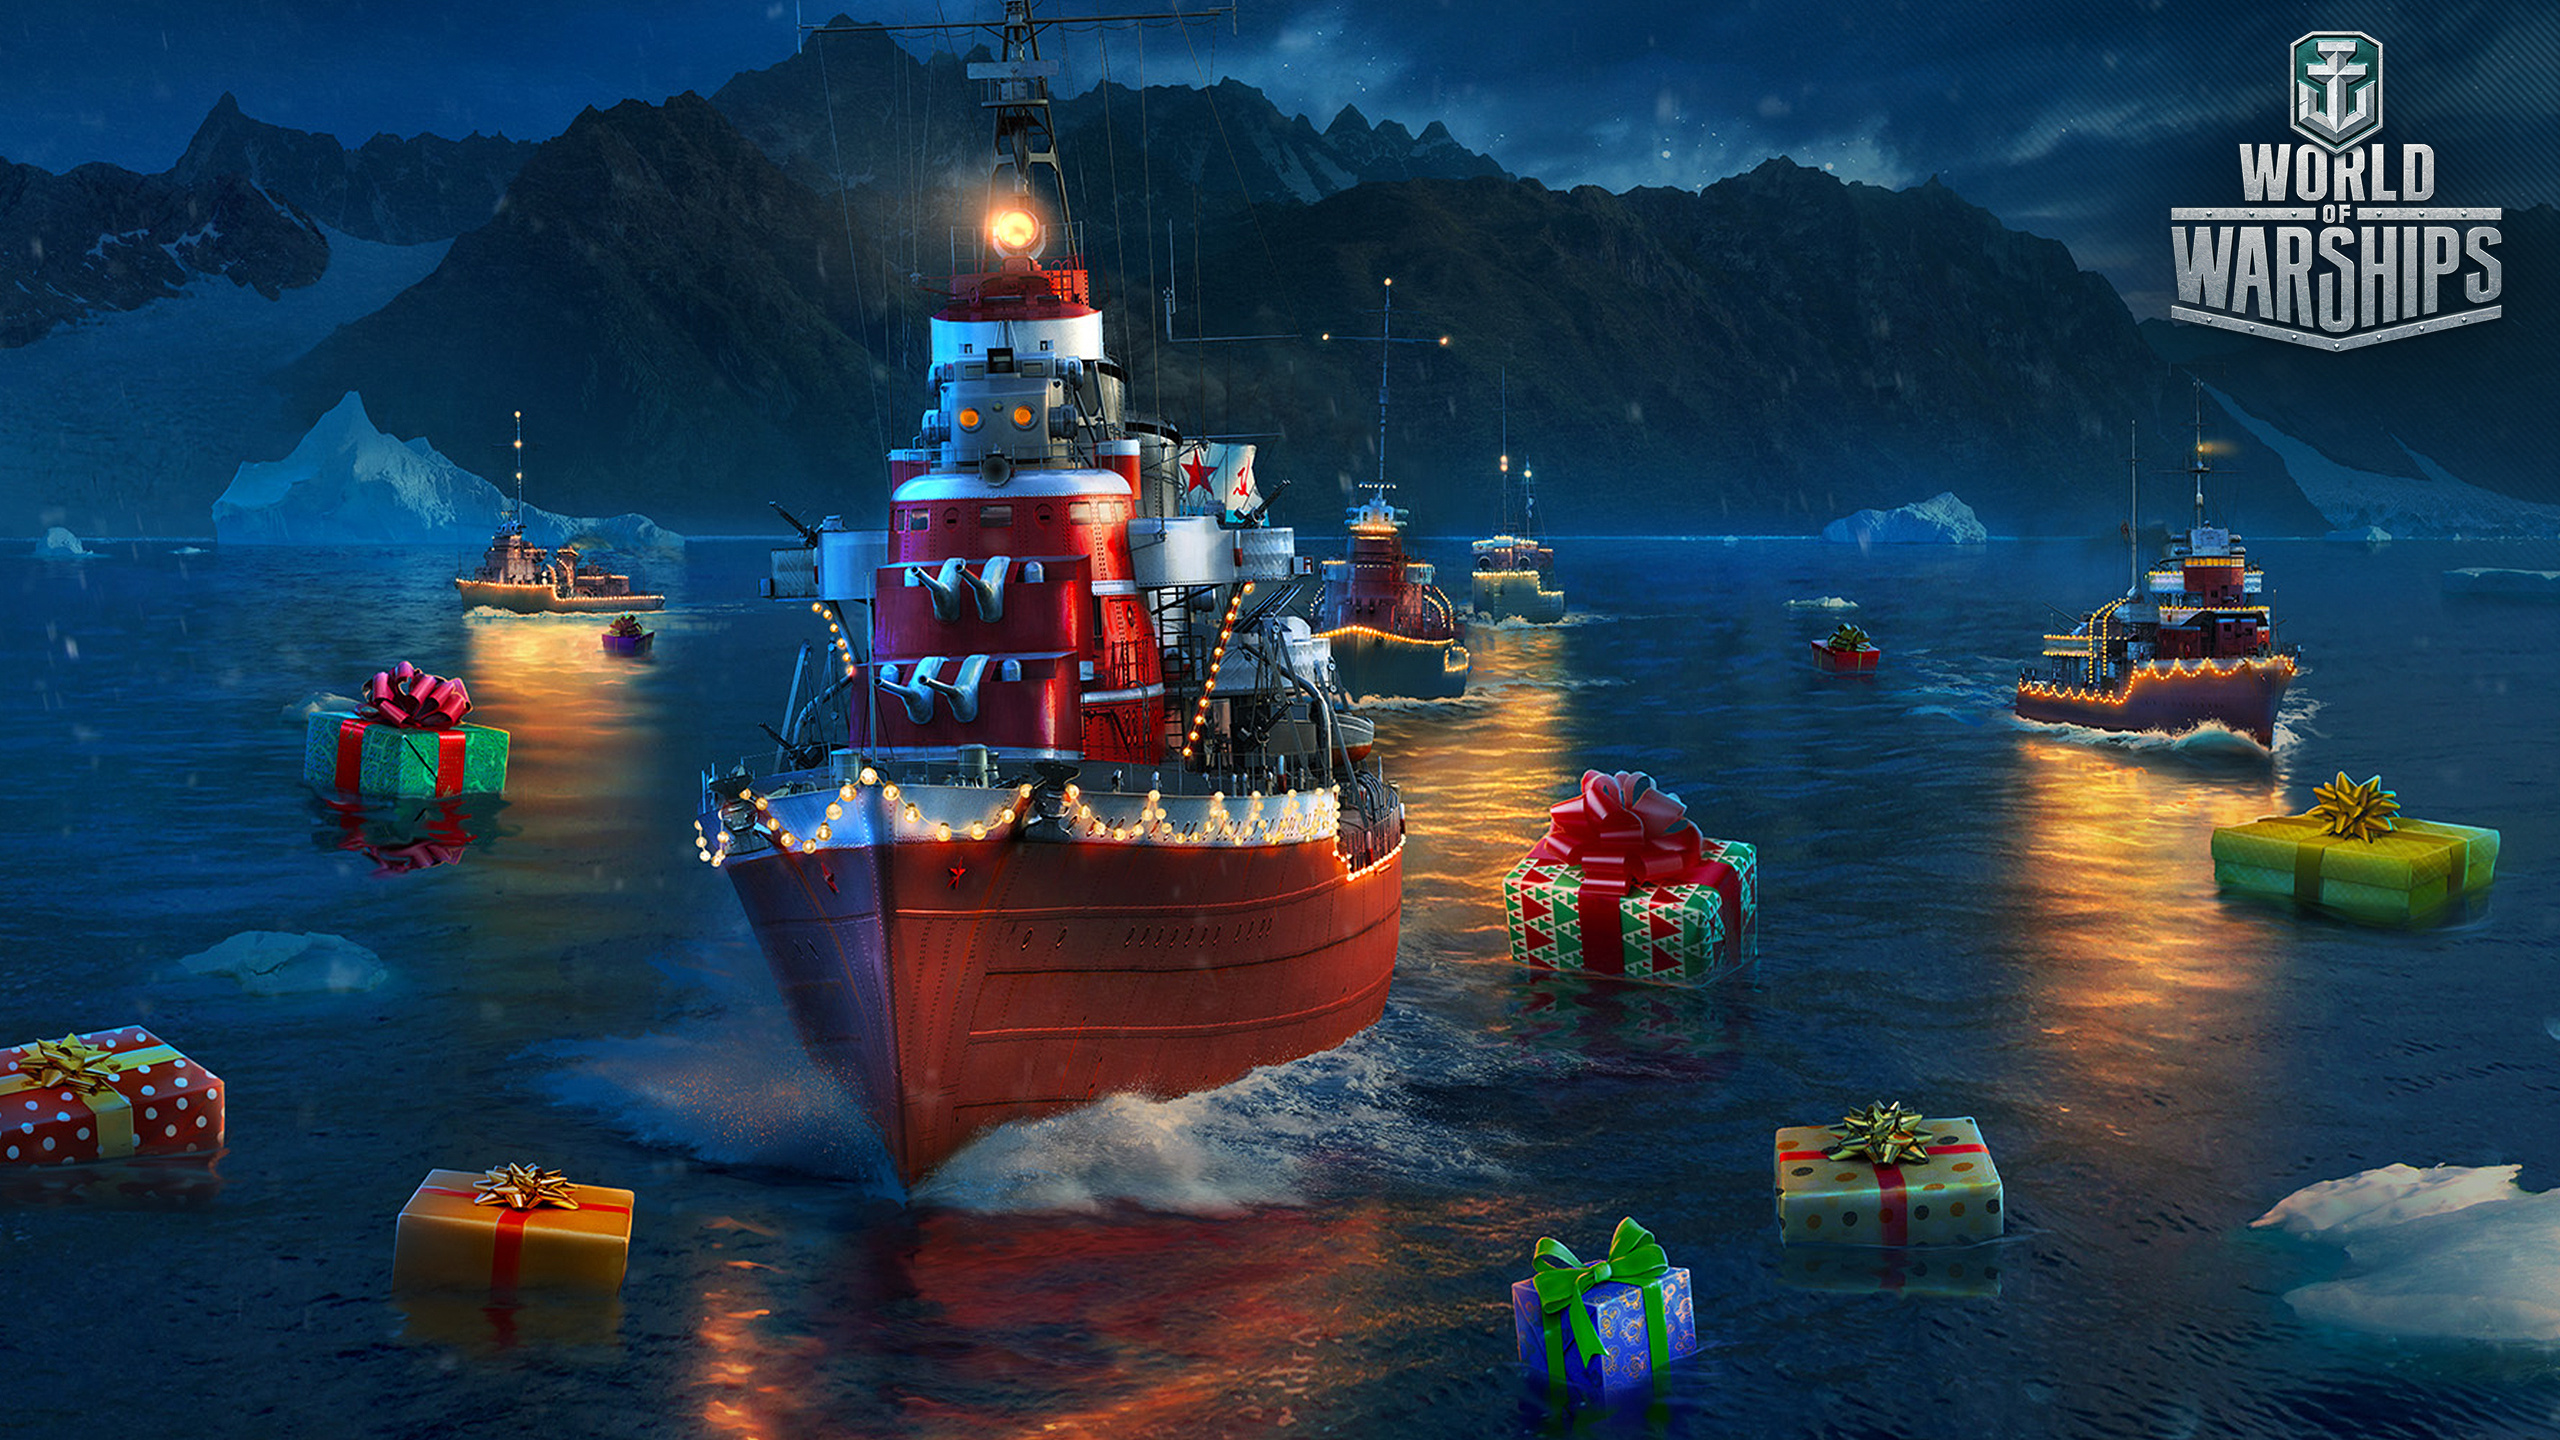 World Of Warships Christmas Containers 2021 Picture World Of Warship New Year Russian Tashkent Ship 2560x1440